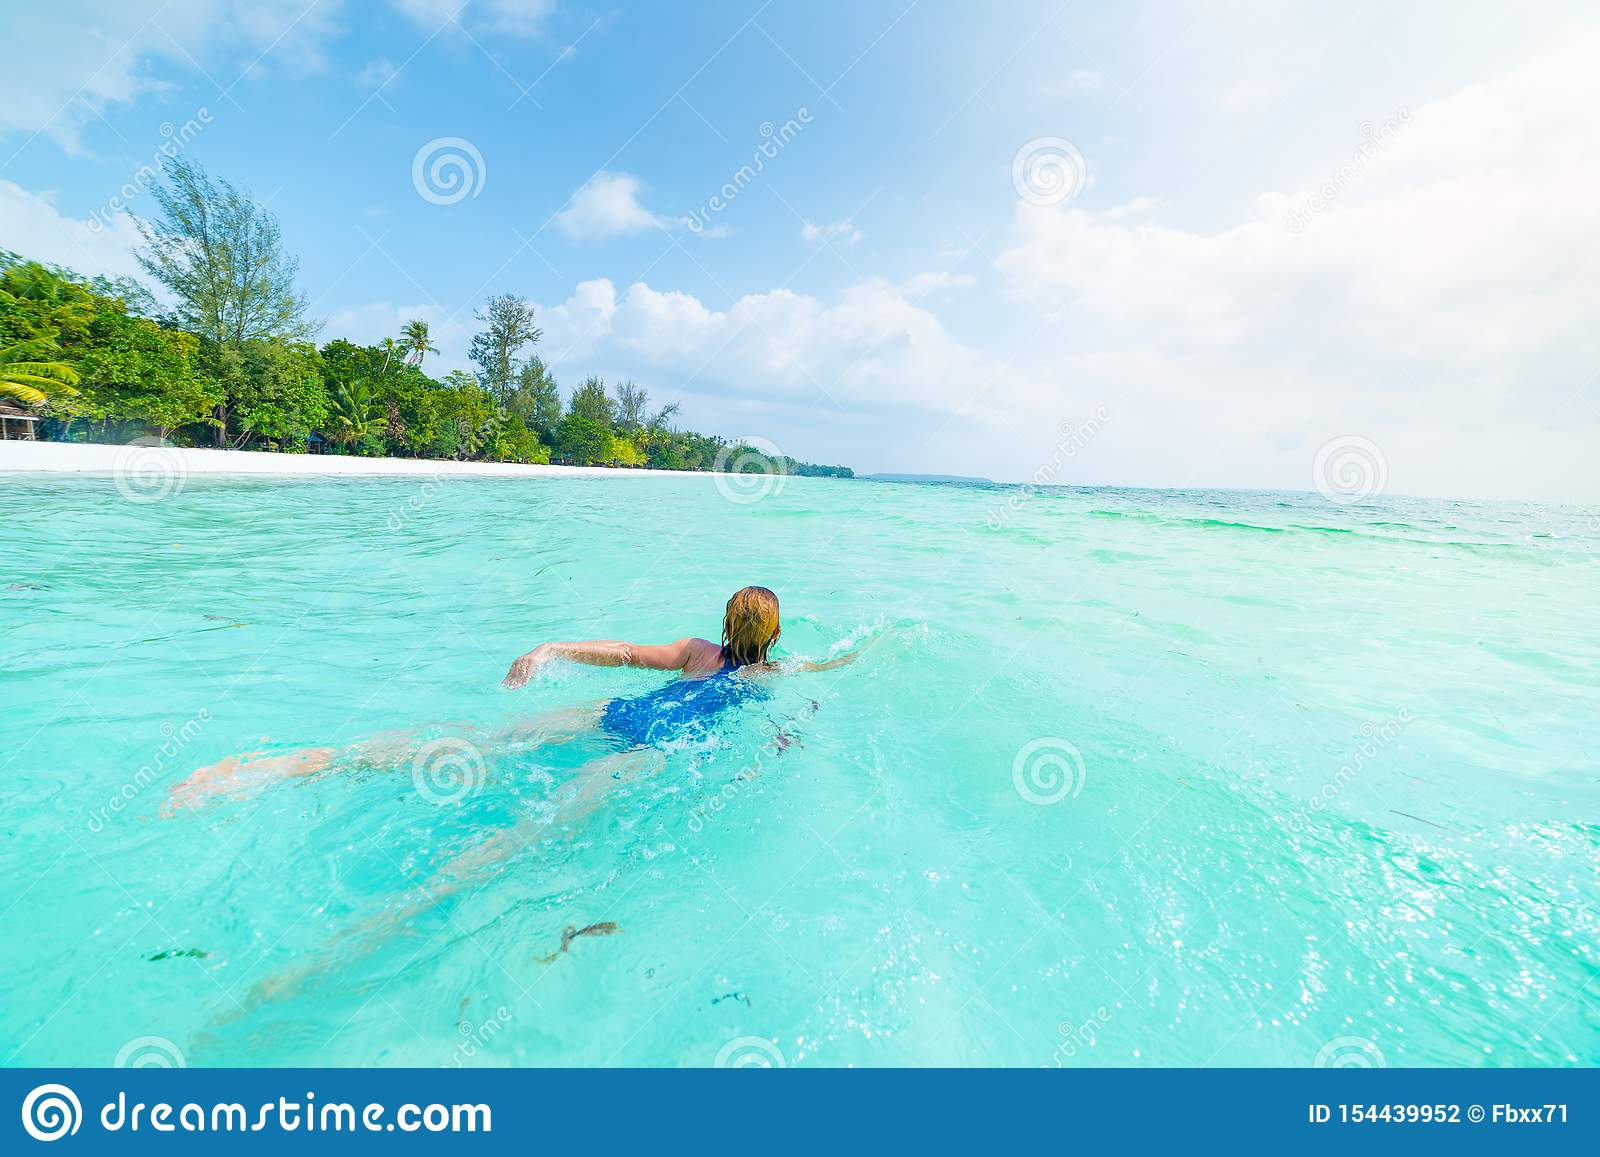 Woman swimming in caribbean sea turquoise transparent water. Tropical beach in the Kei Islands Moluccas, summer tourist